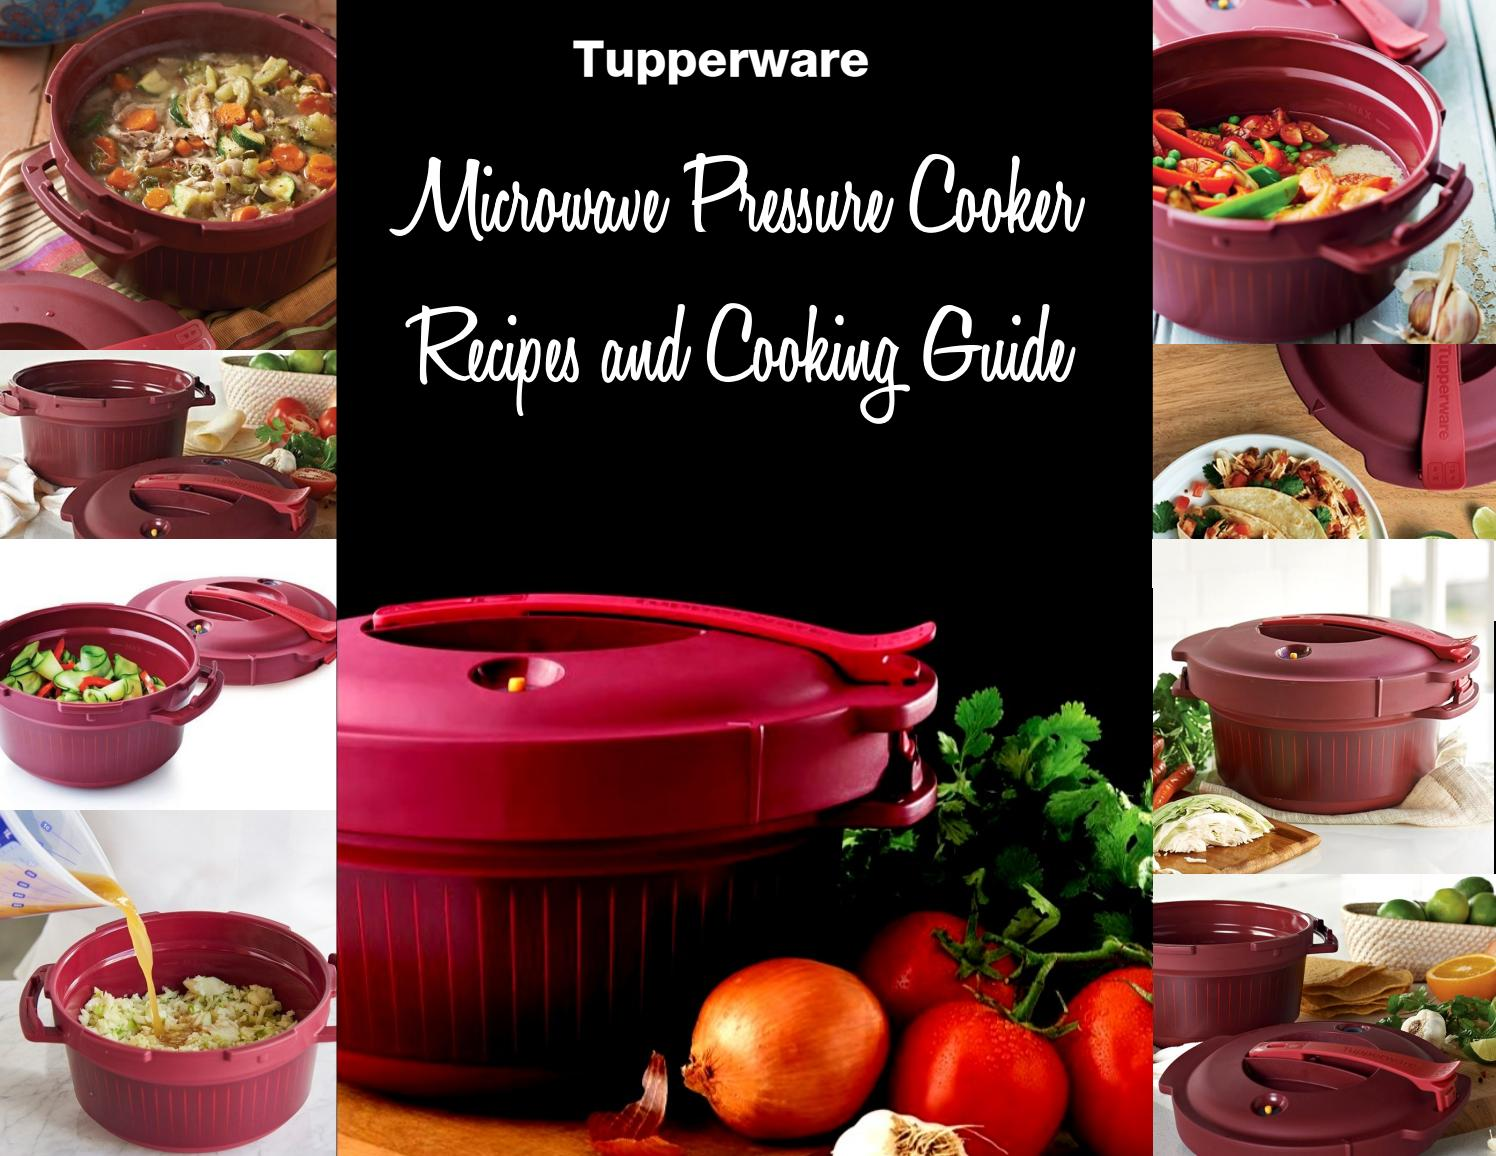 Tupperware pressure cooker recipes and cooking guide by Selena